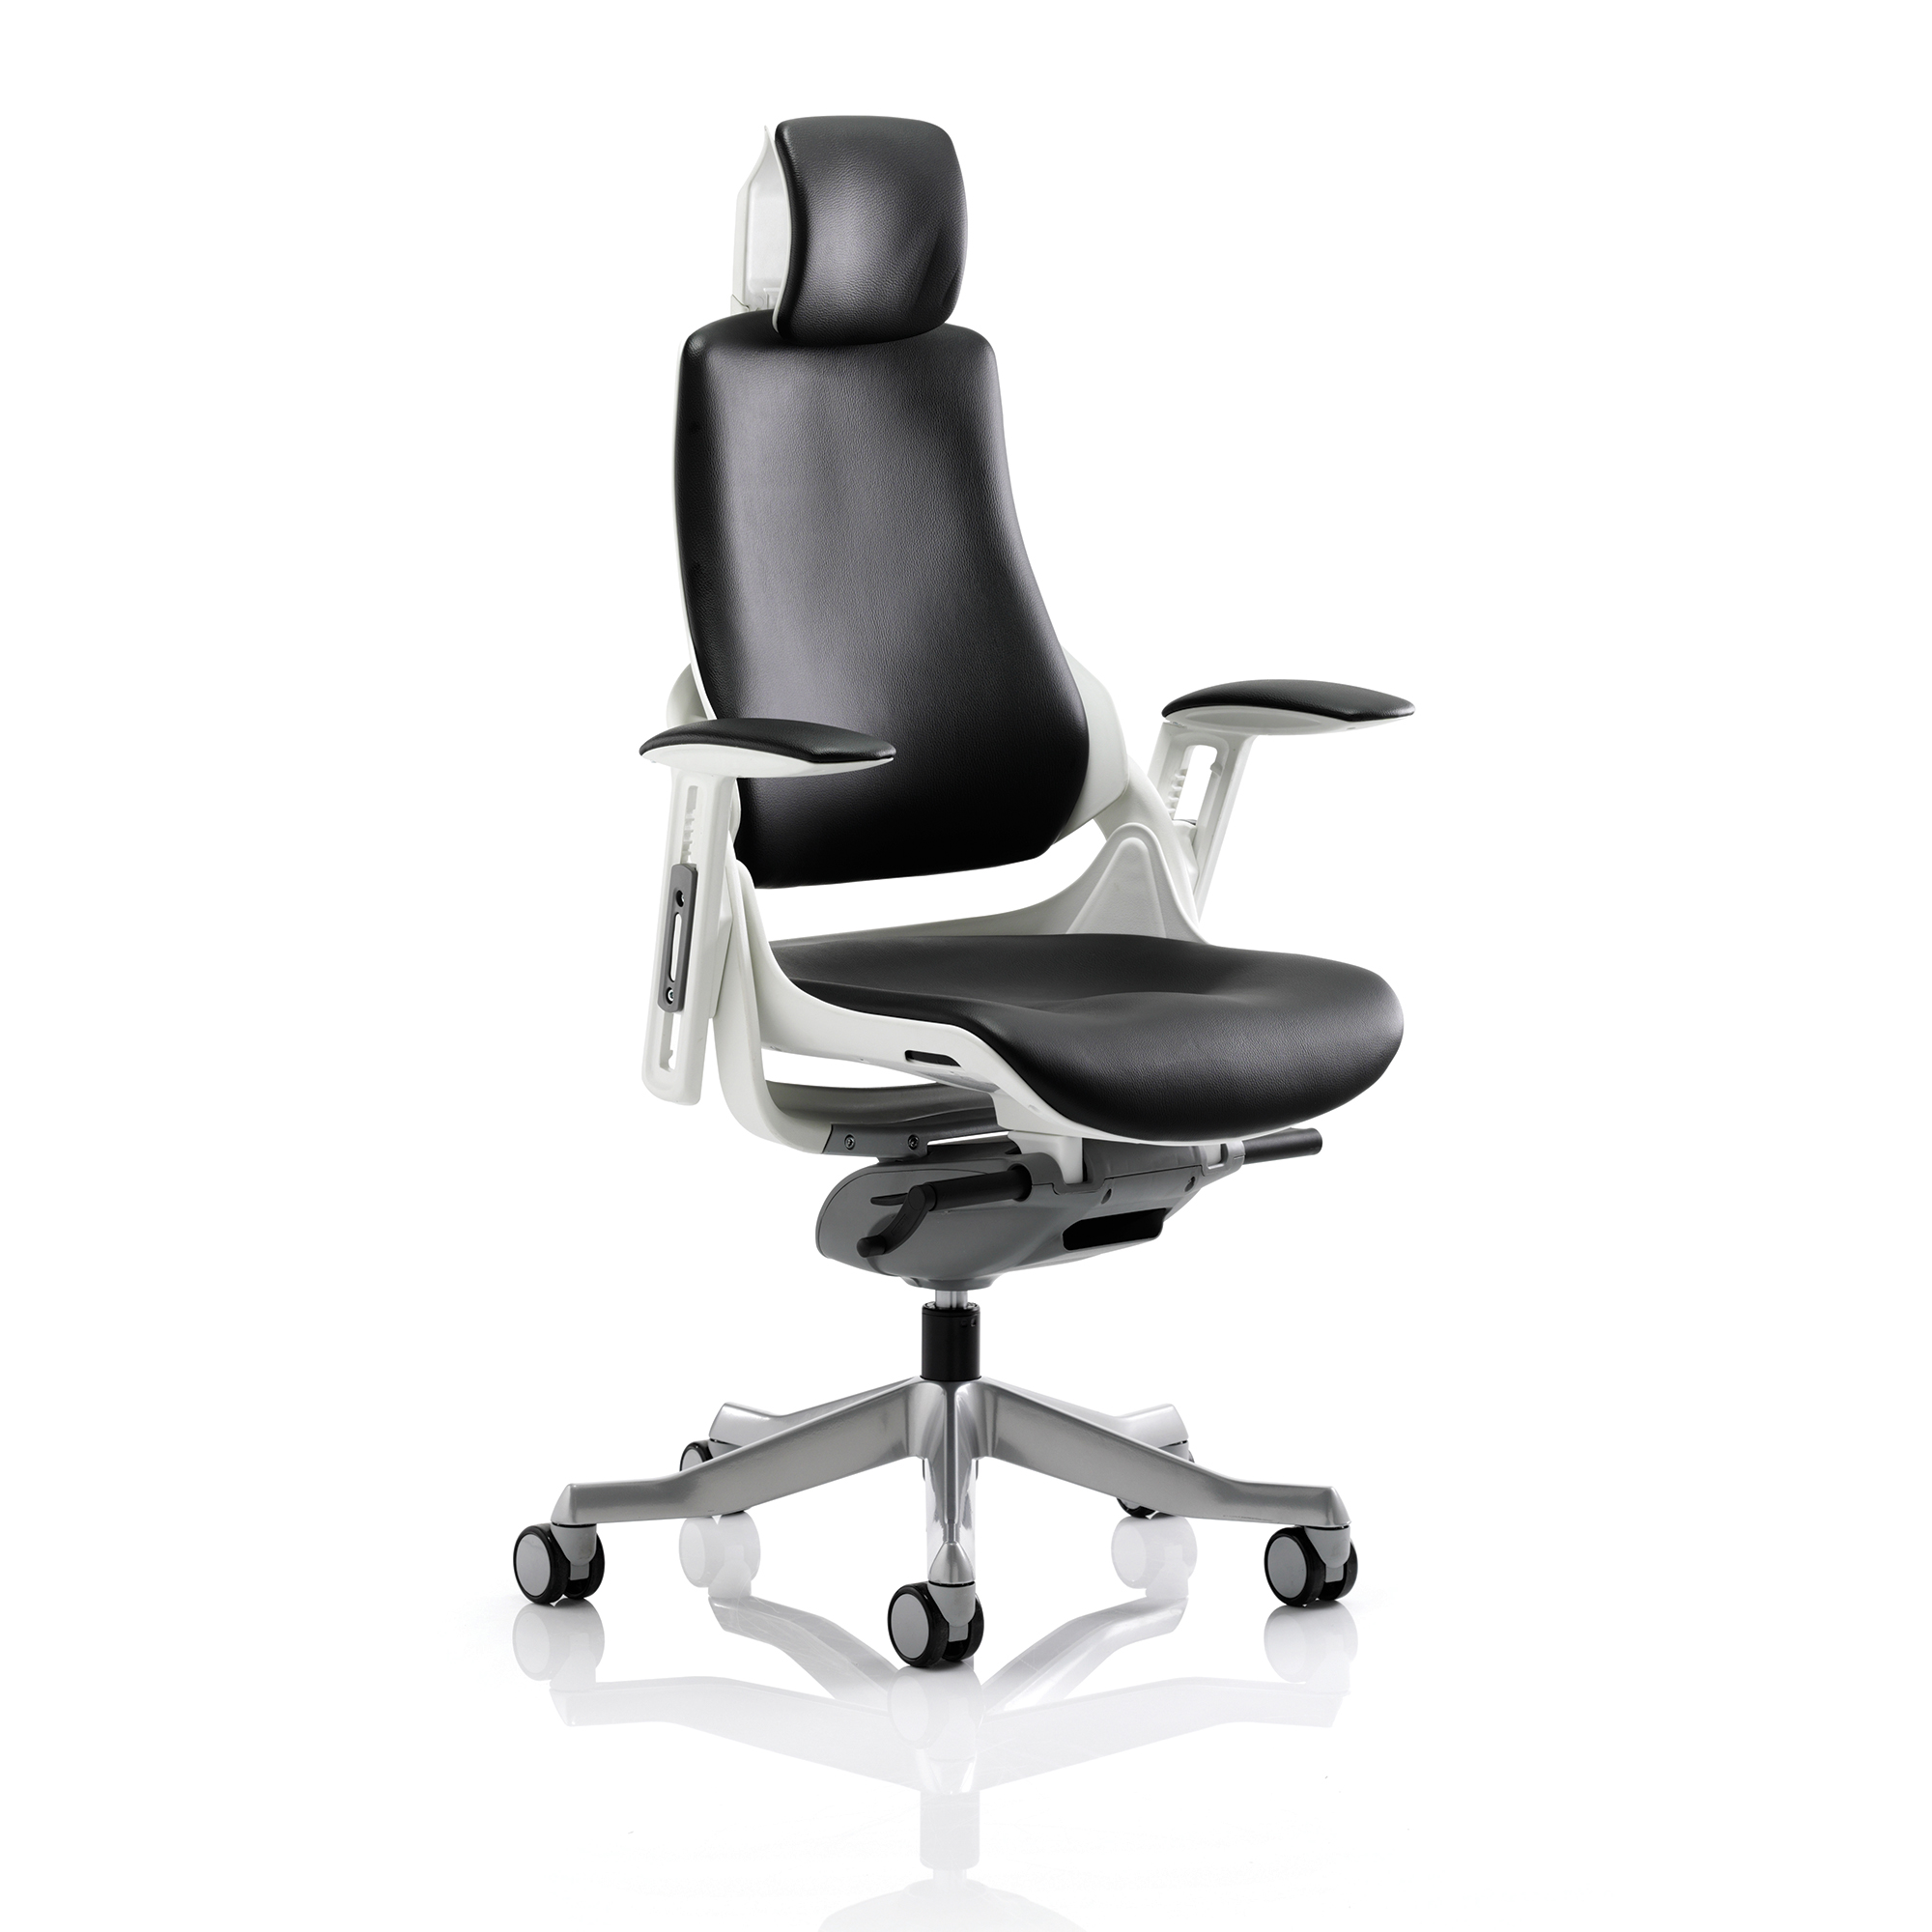 Adroit Zure Executive Chair With Arms With Headrest Leather Black Ref KC0166